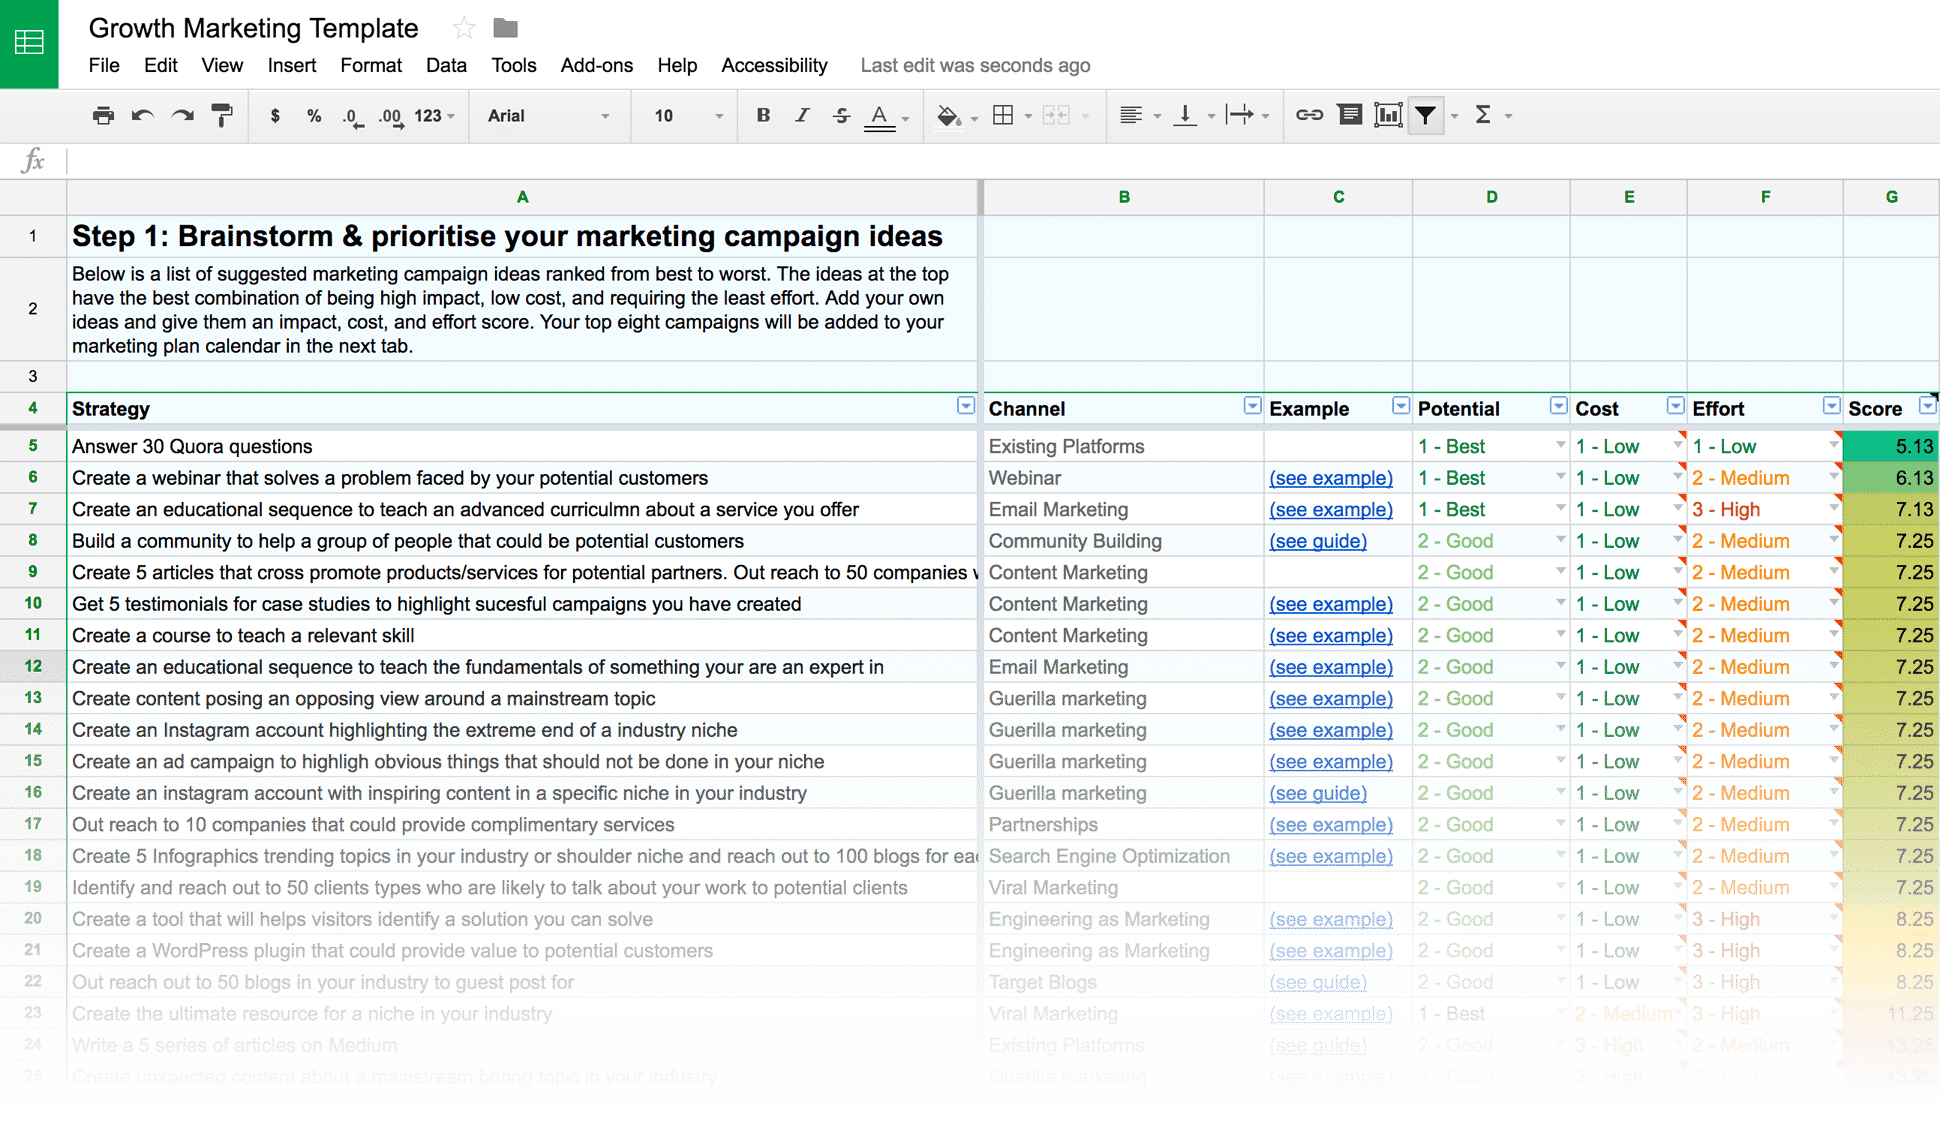 Free Digital Marketing Plan Template Generator - by Venture